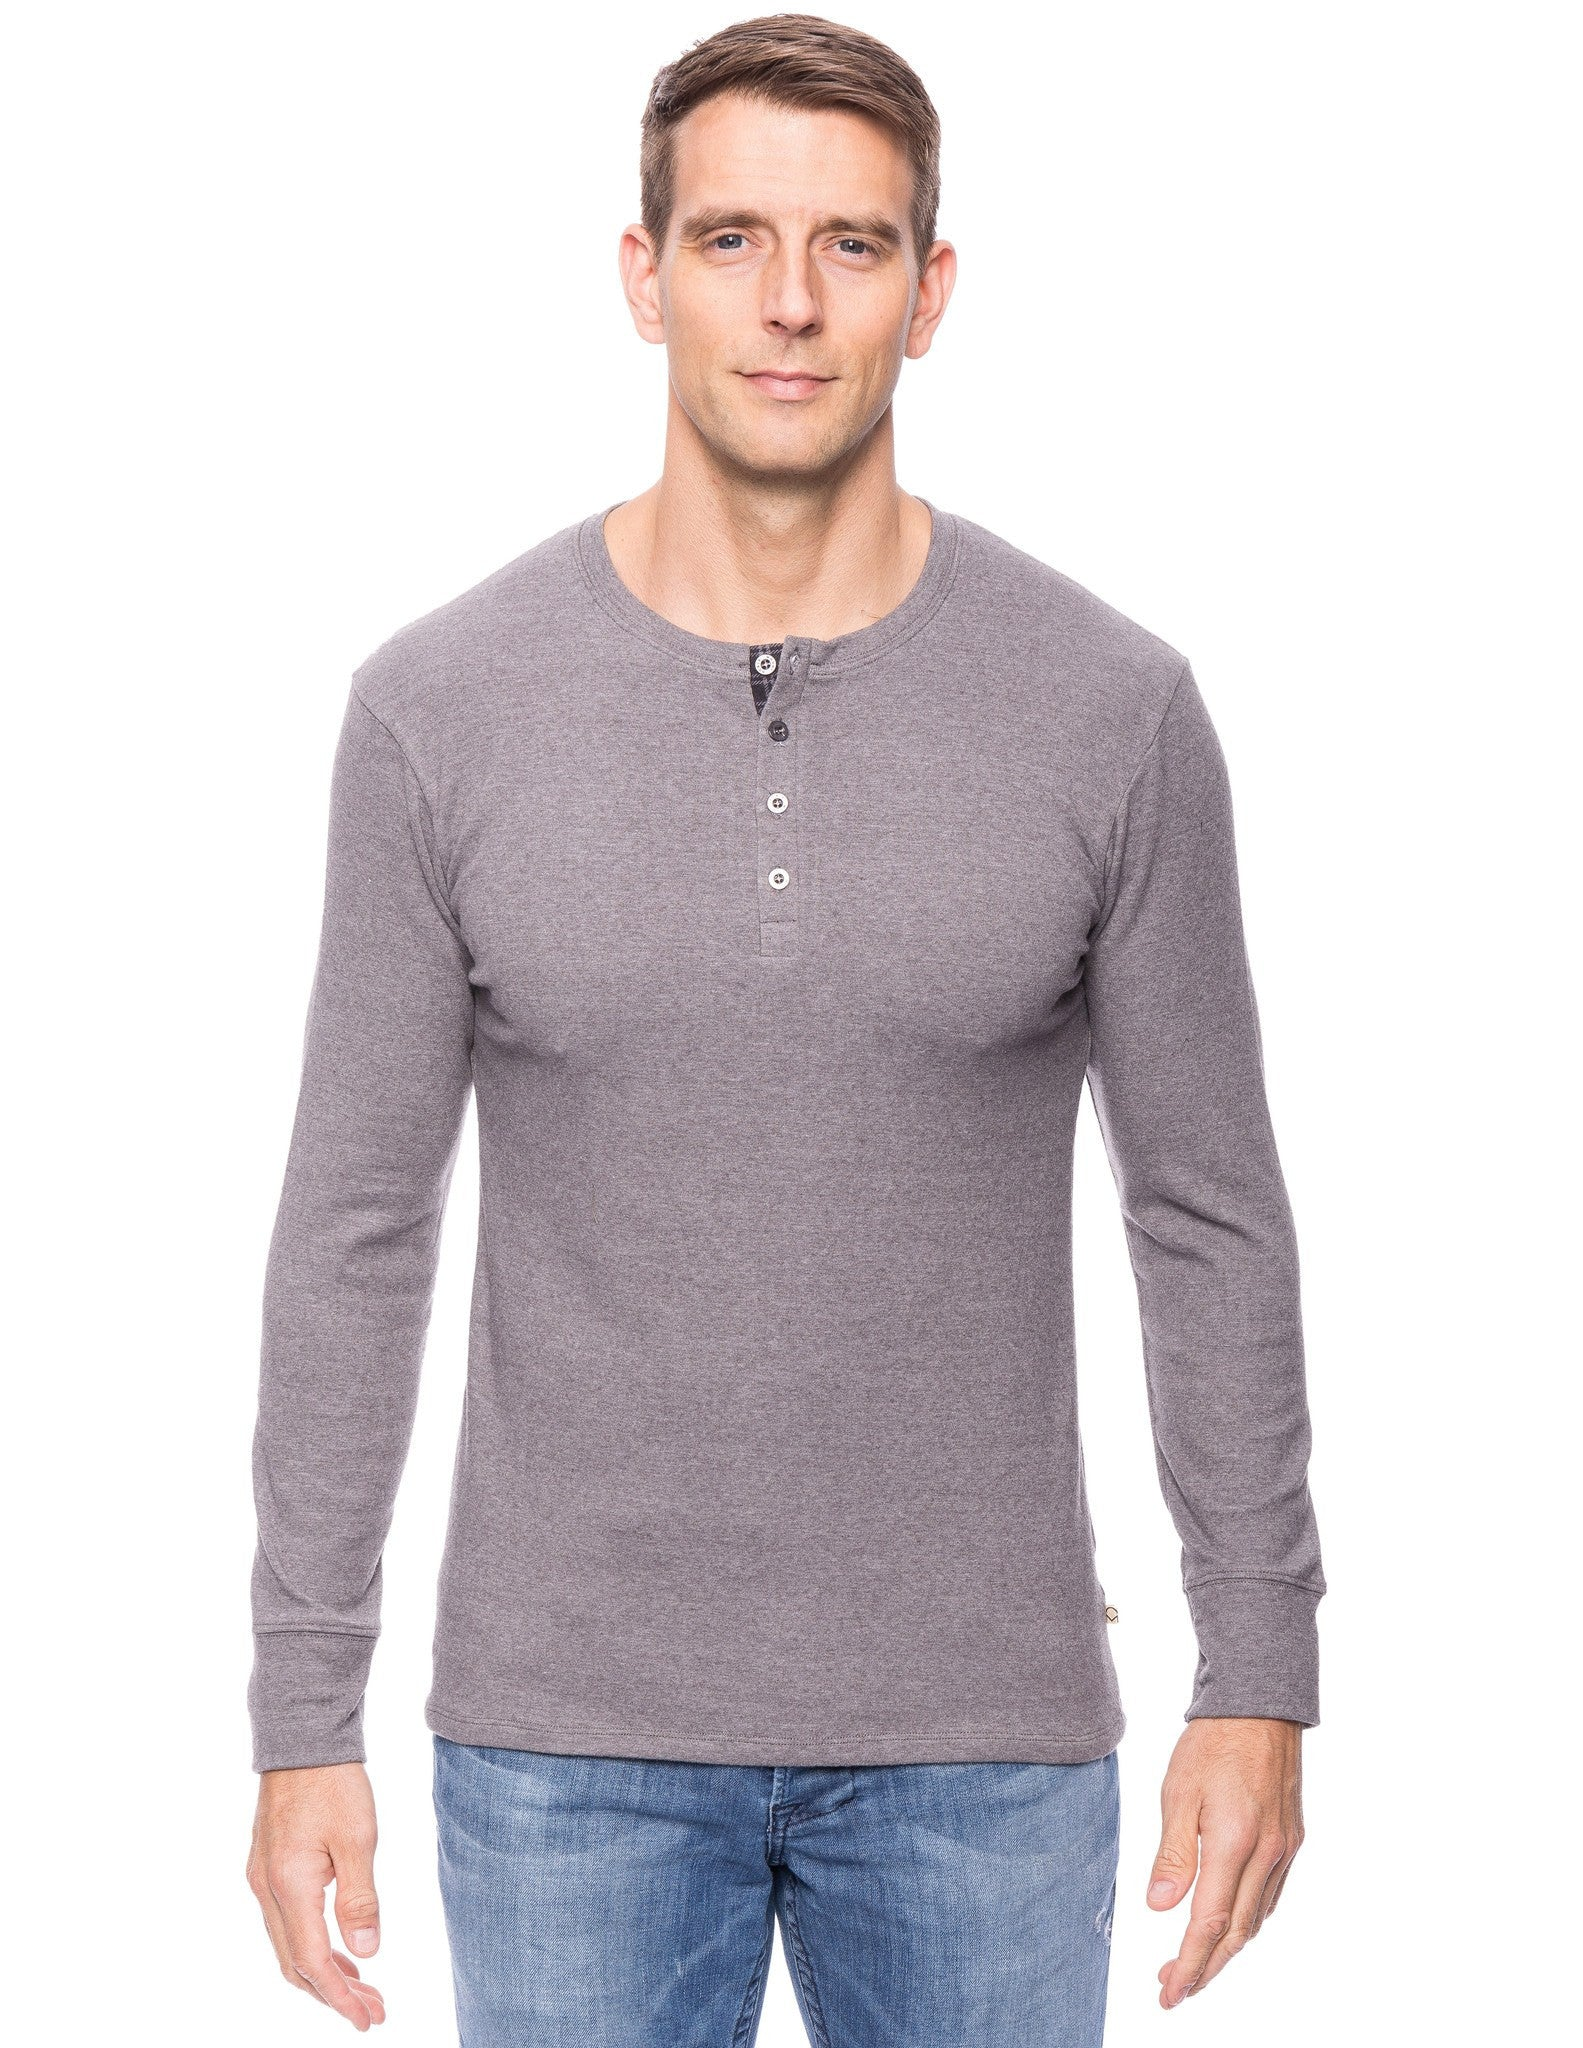 Men's Soft Brushed Rib Long Sleeve Henley Top